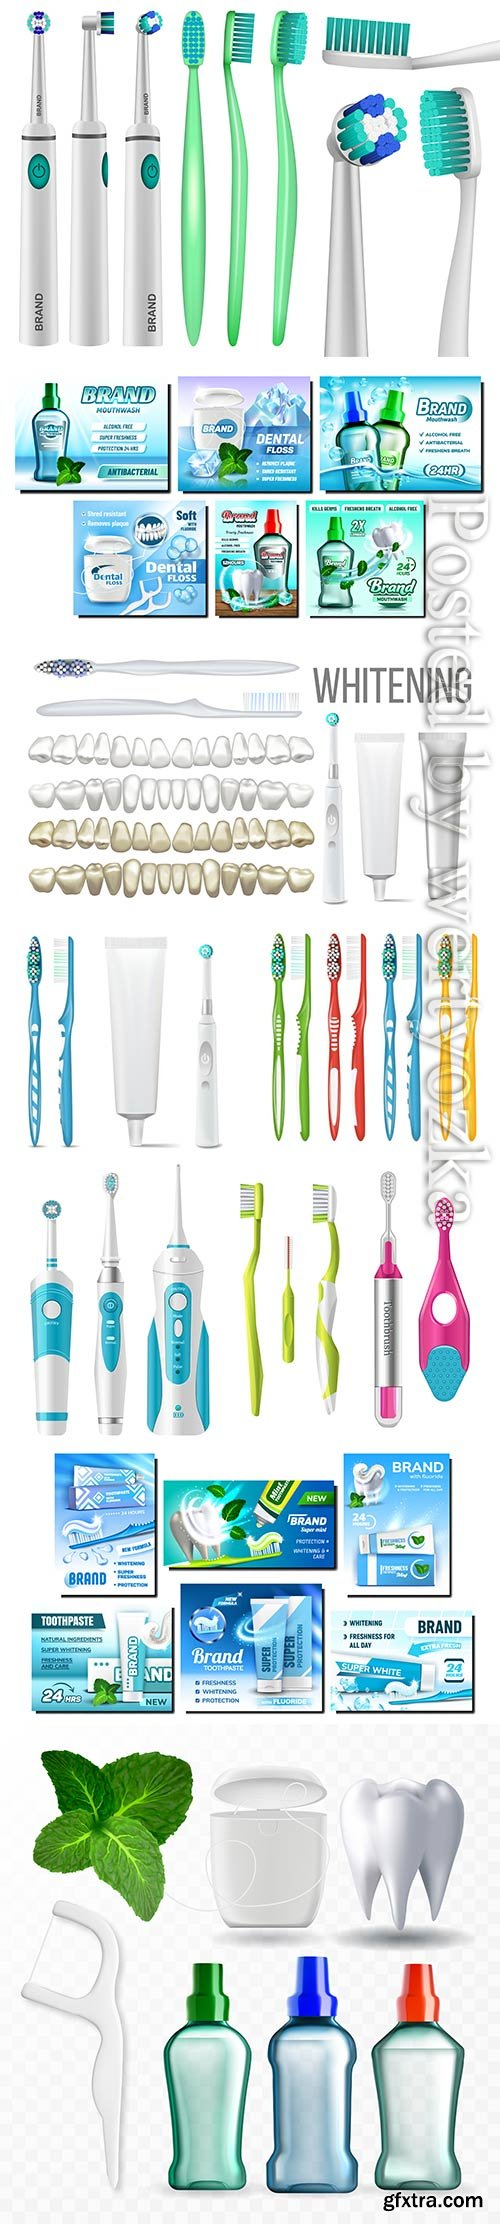 Dental floss promotional, toothpaste advertising vector set